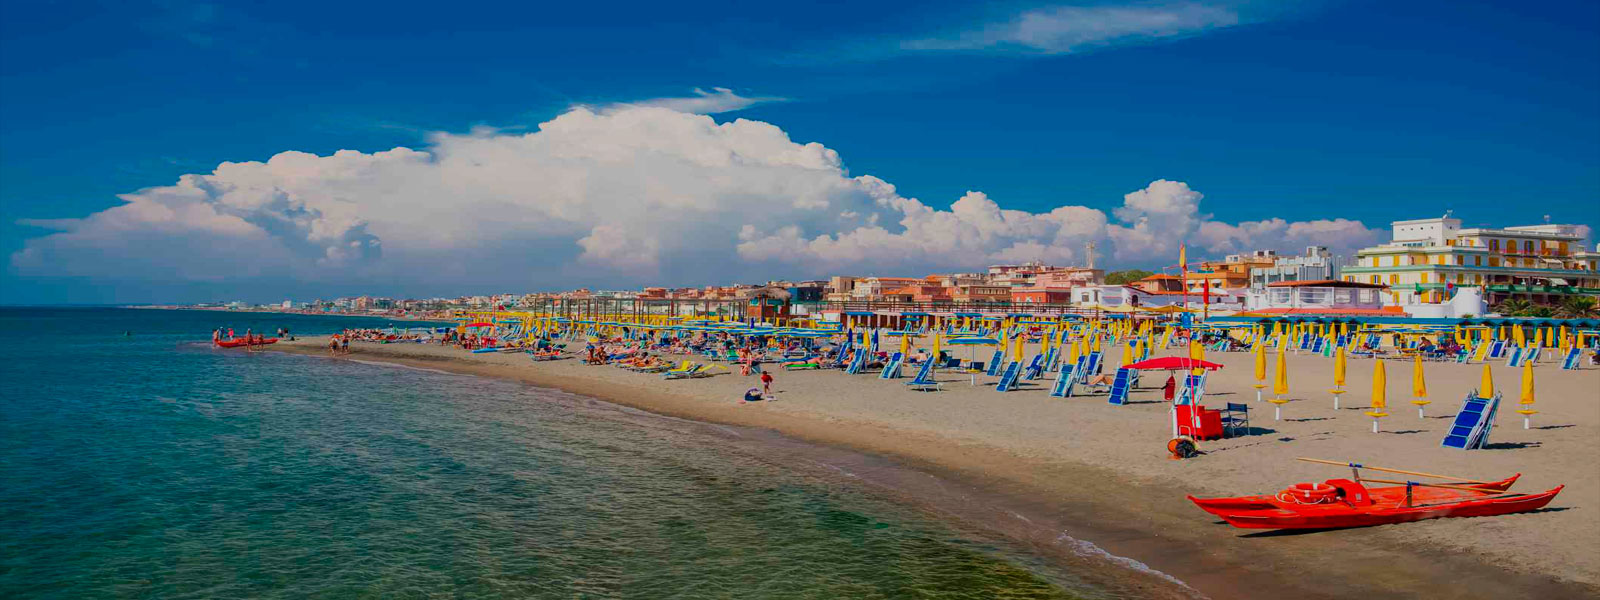 Transfer from Rome (Fiumicino Airport) to Anzio